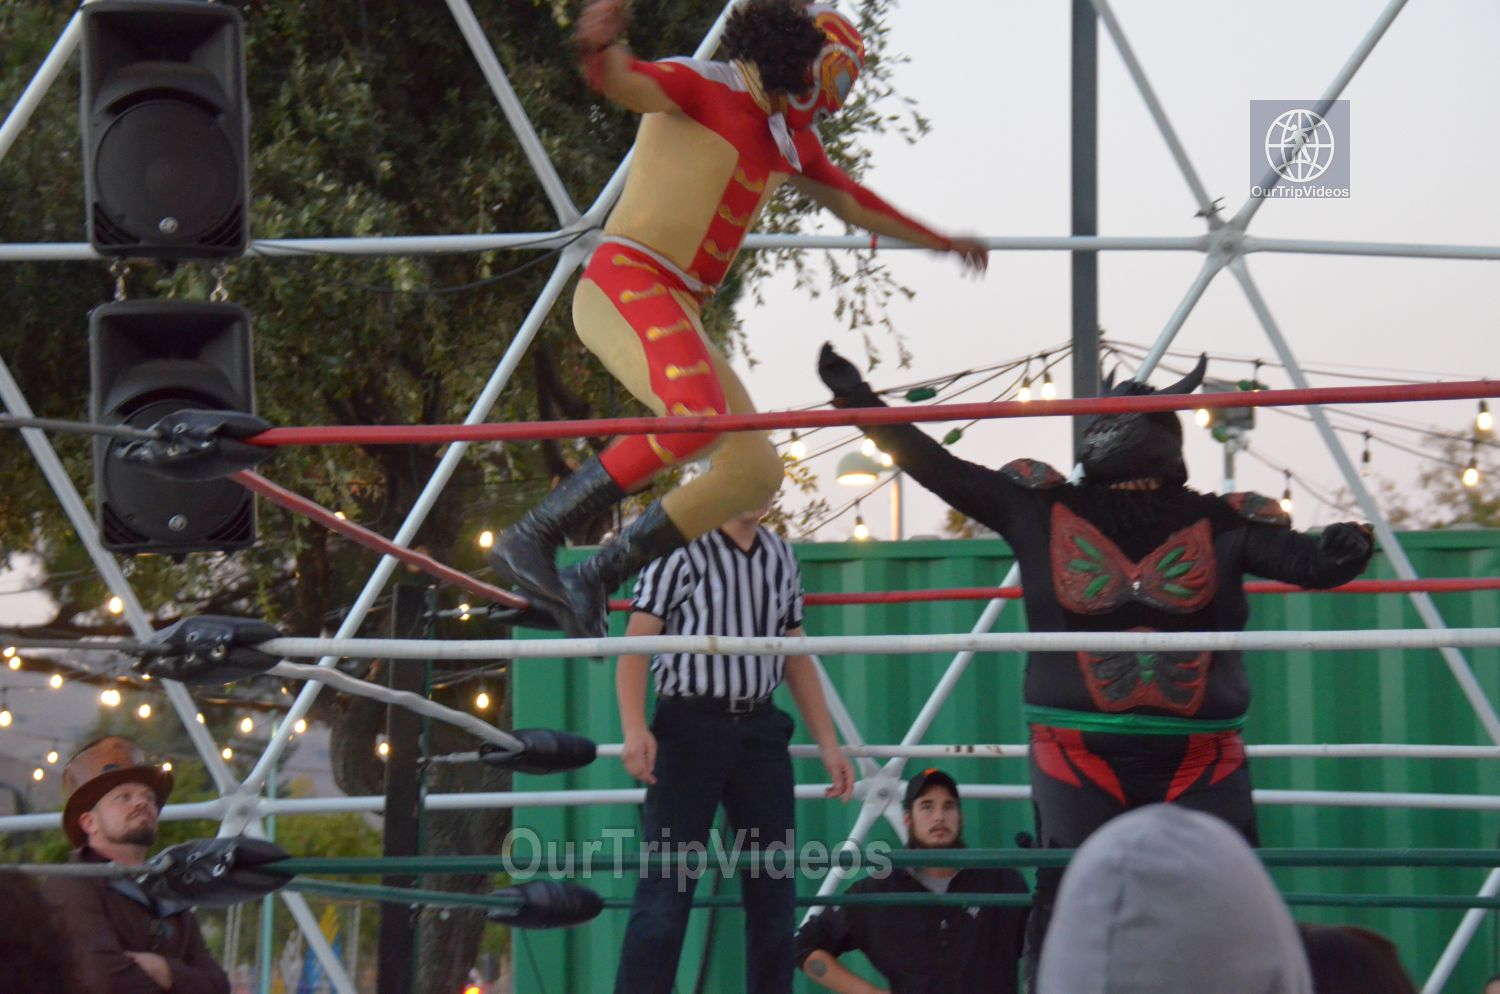 Throwdown at the Thunderdome (Luchador Wrestling), Fremont, CA, USA - Picture 5 of 25